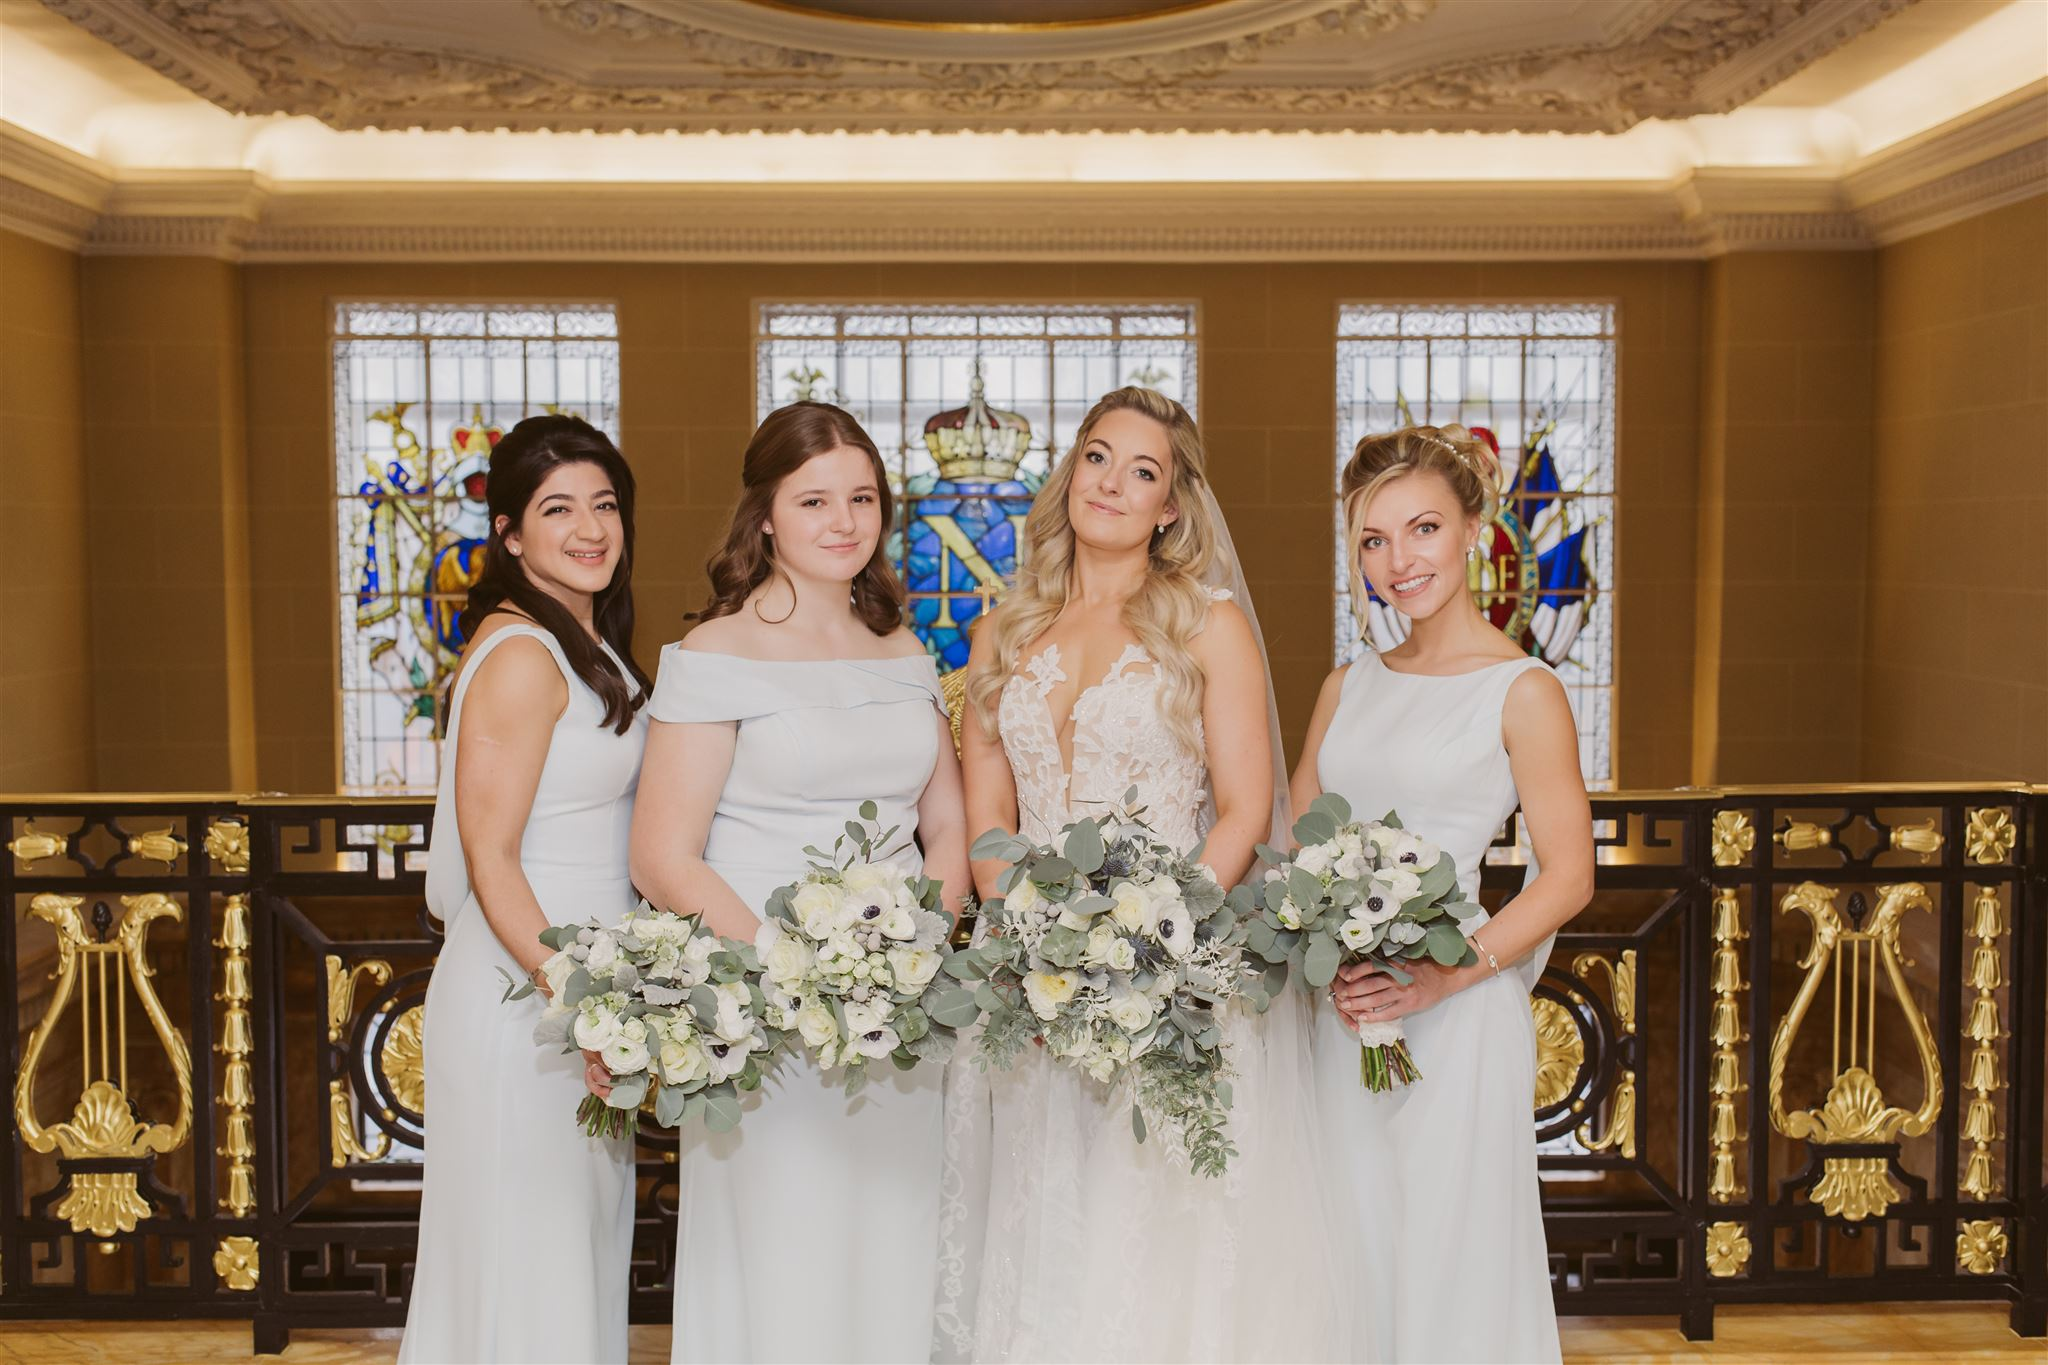 Bridal bouquets by Rachel Morgan Wedding Flowers